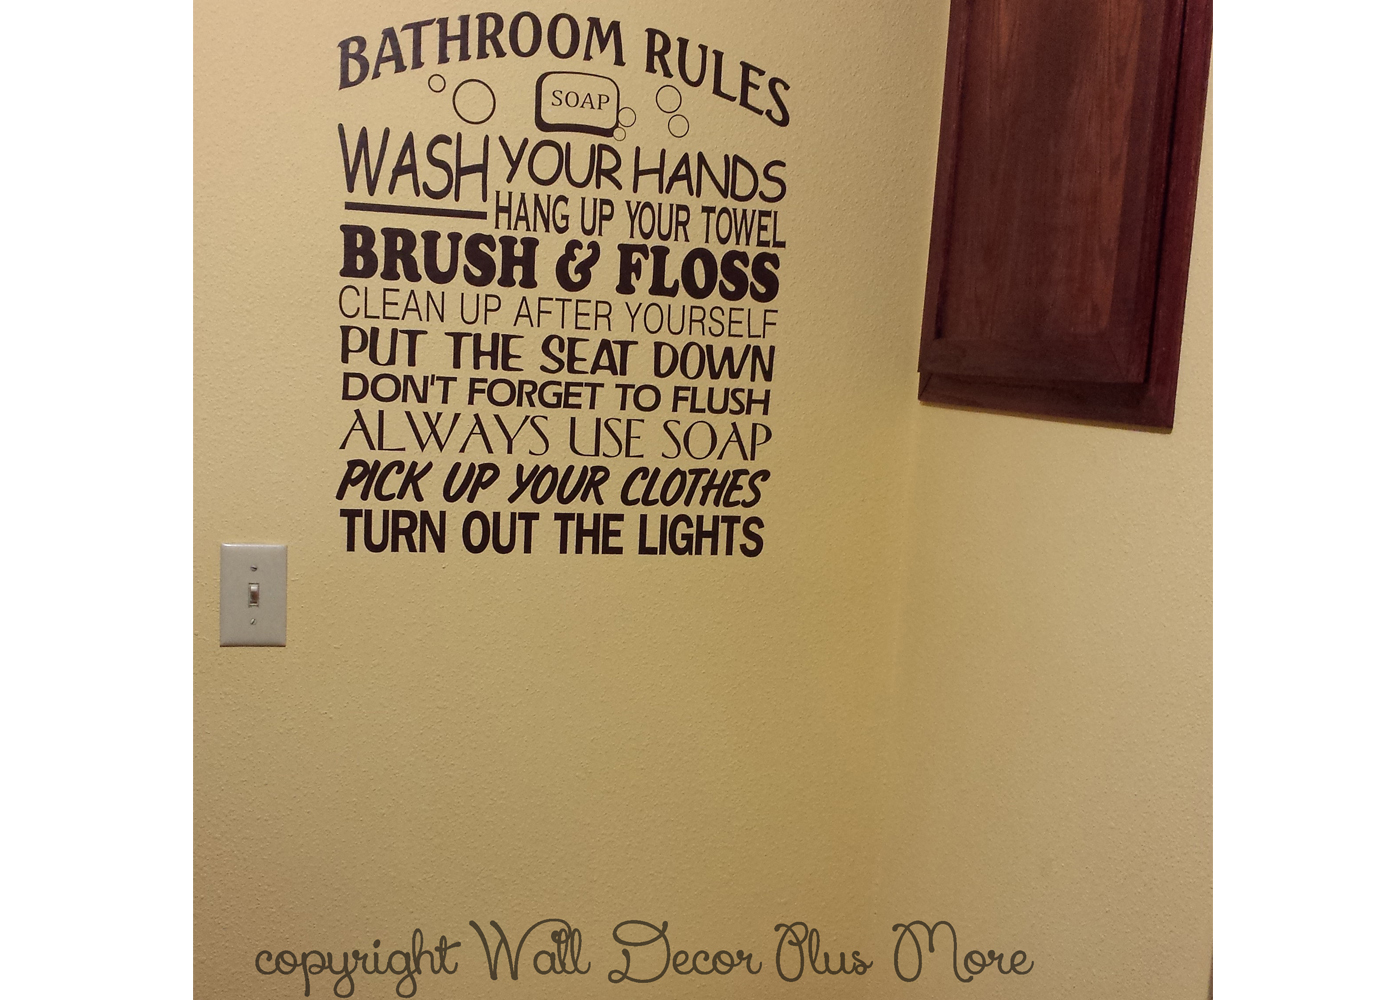 wd219-bathroom-rules-subway-wall-decal-sticker.jpg